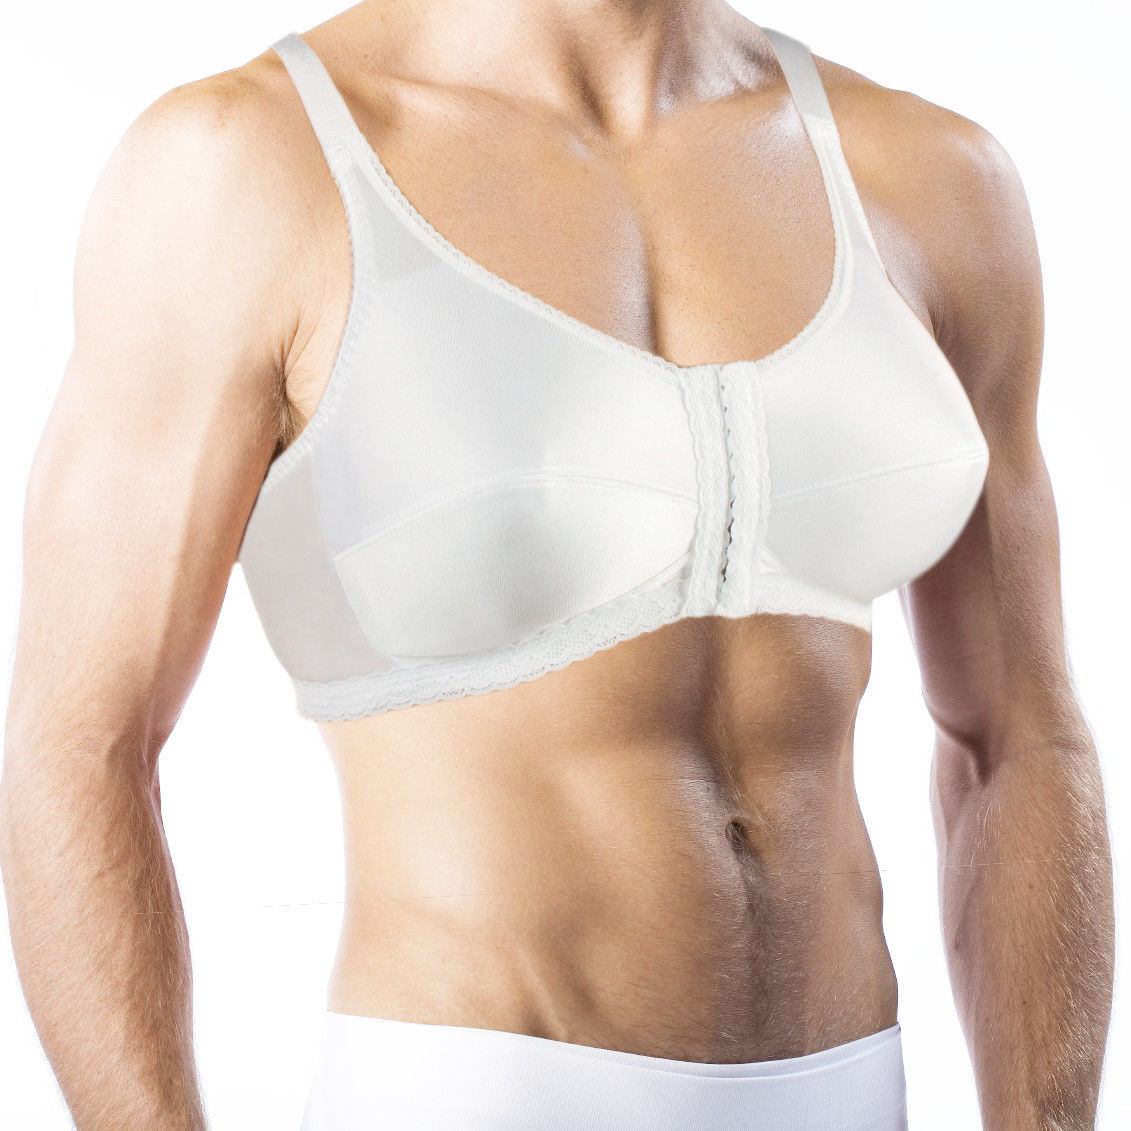 Bra For Men. Holds Silicone Breast Forms! Crossdressing